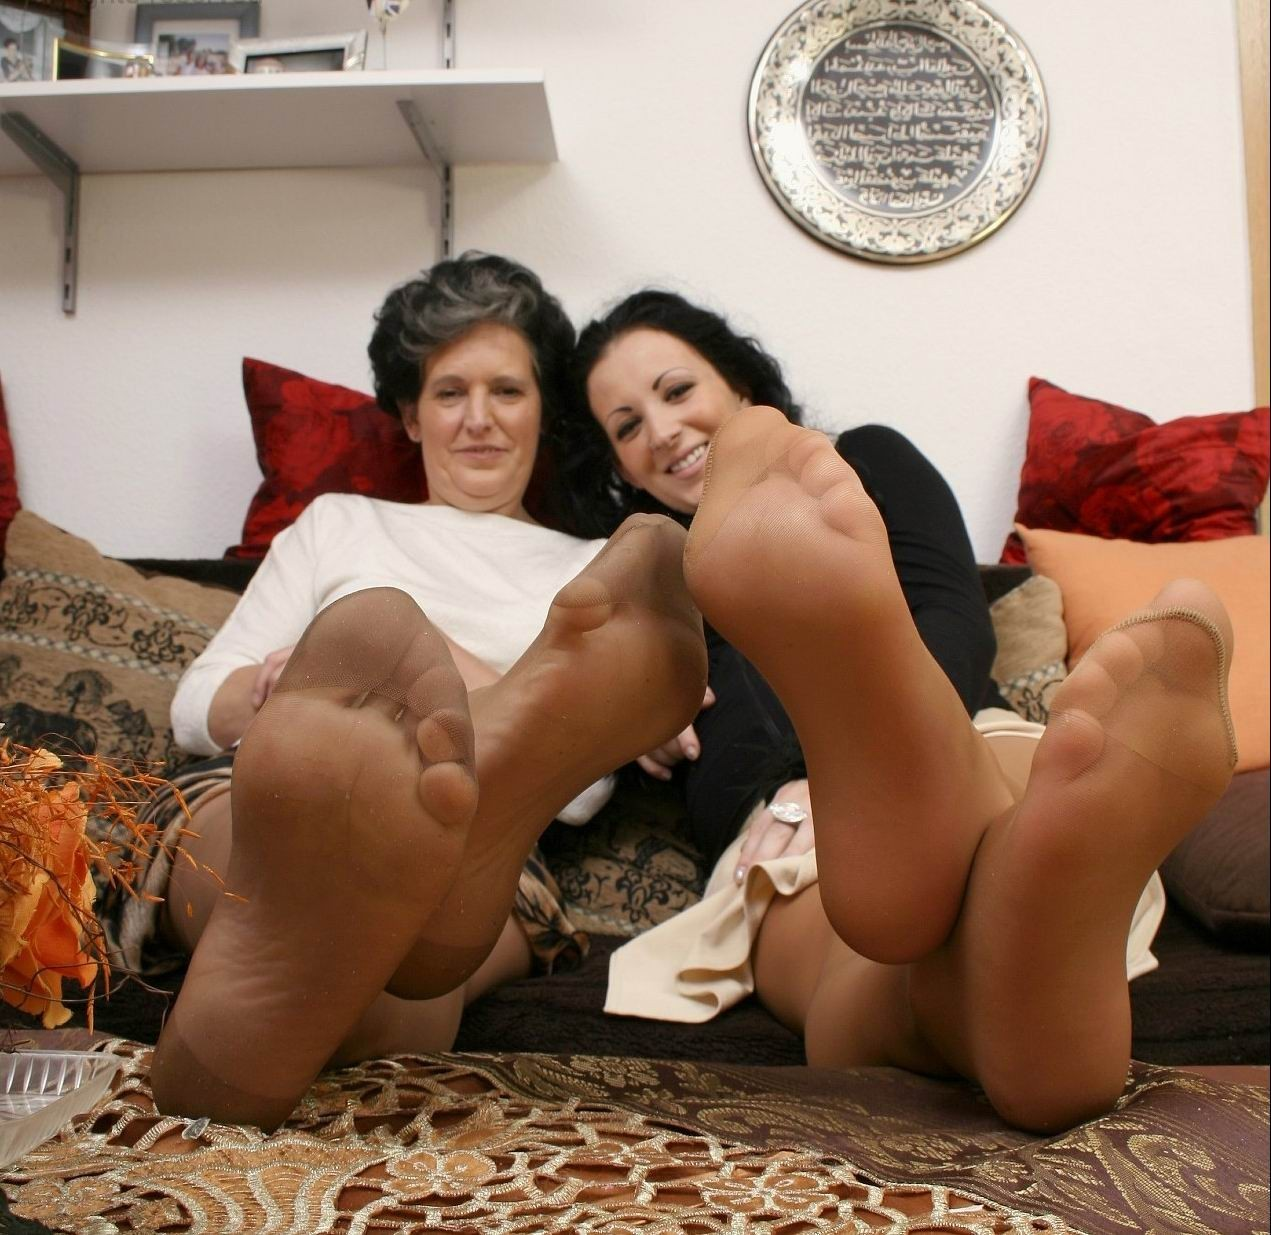 mom pantyhose pic porn pics free mom pantyhose daughter